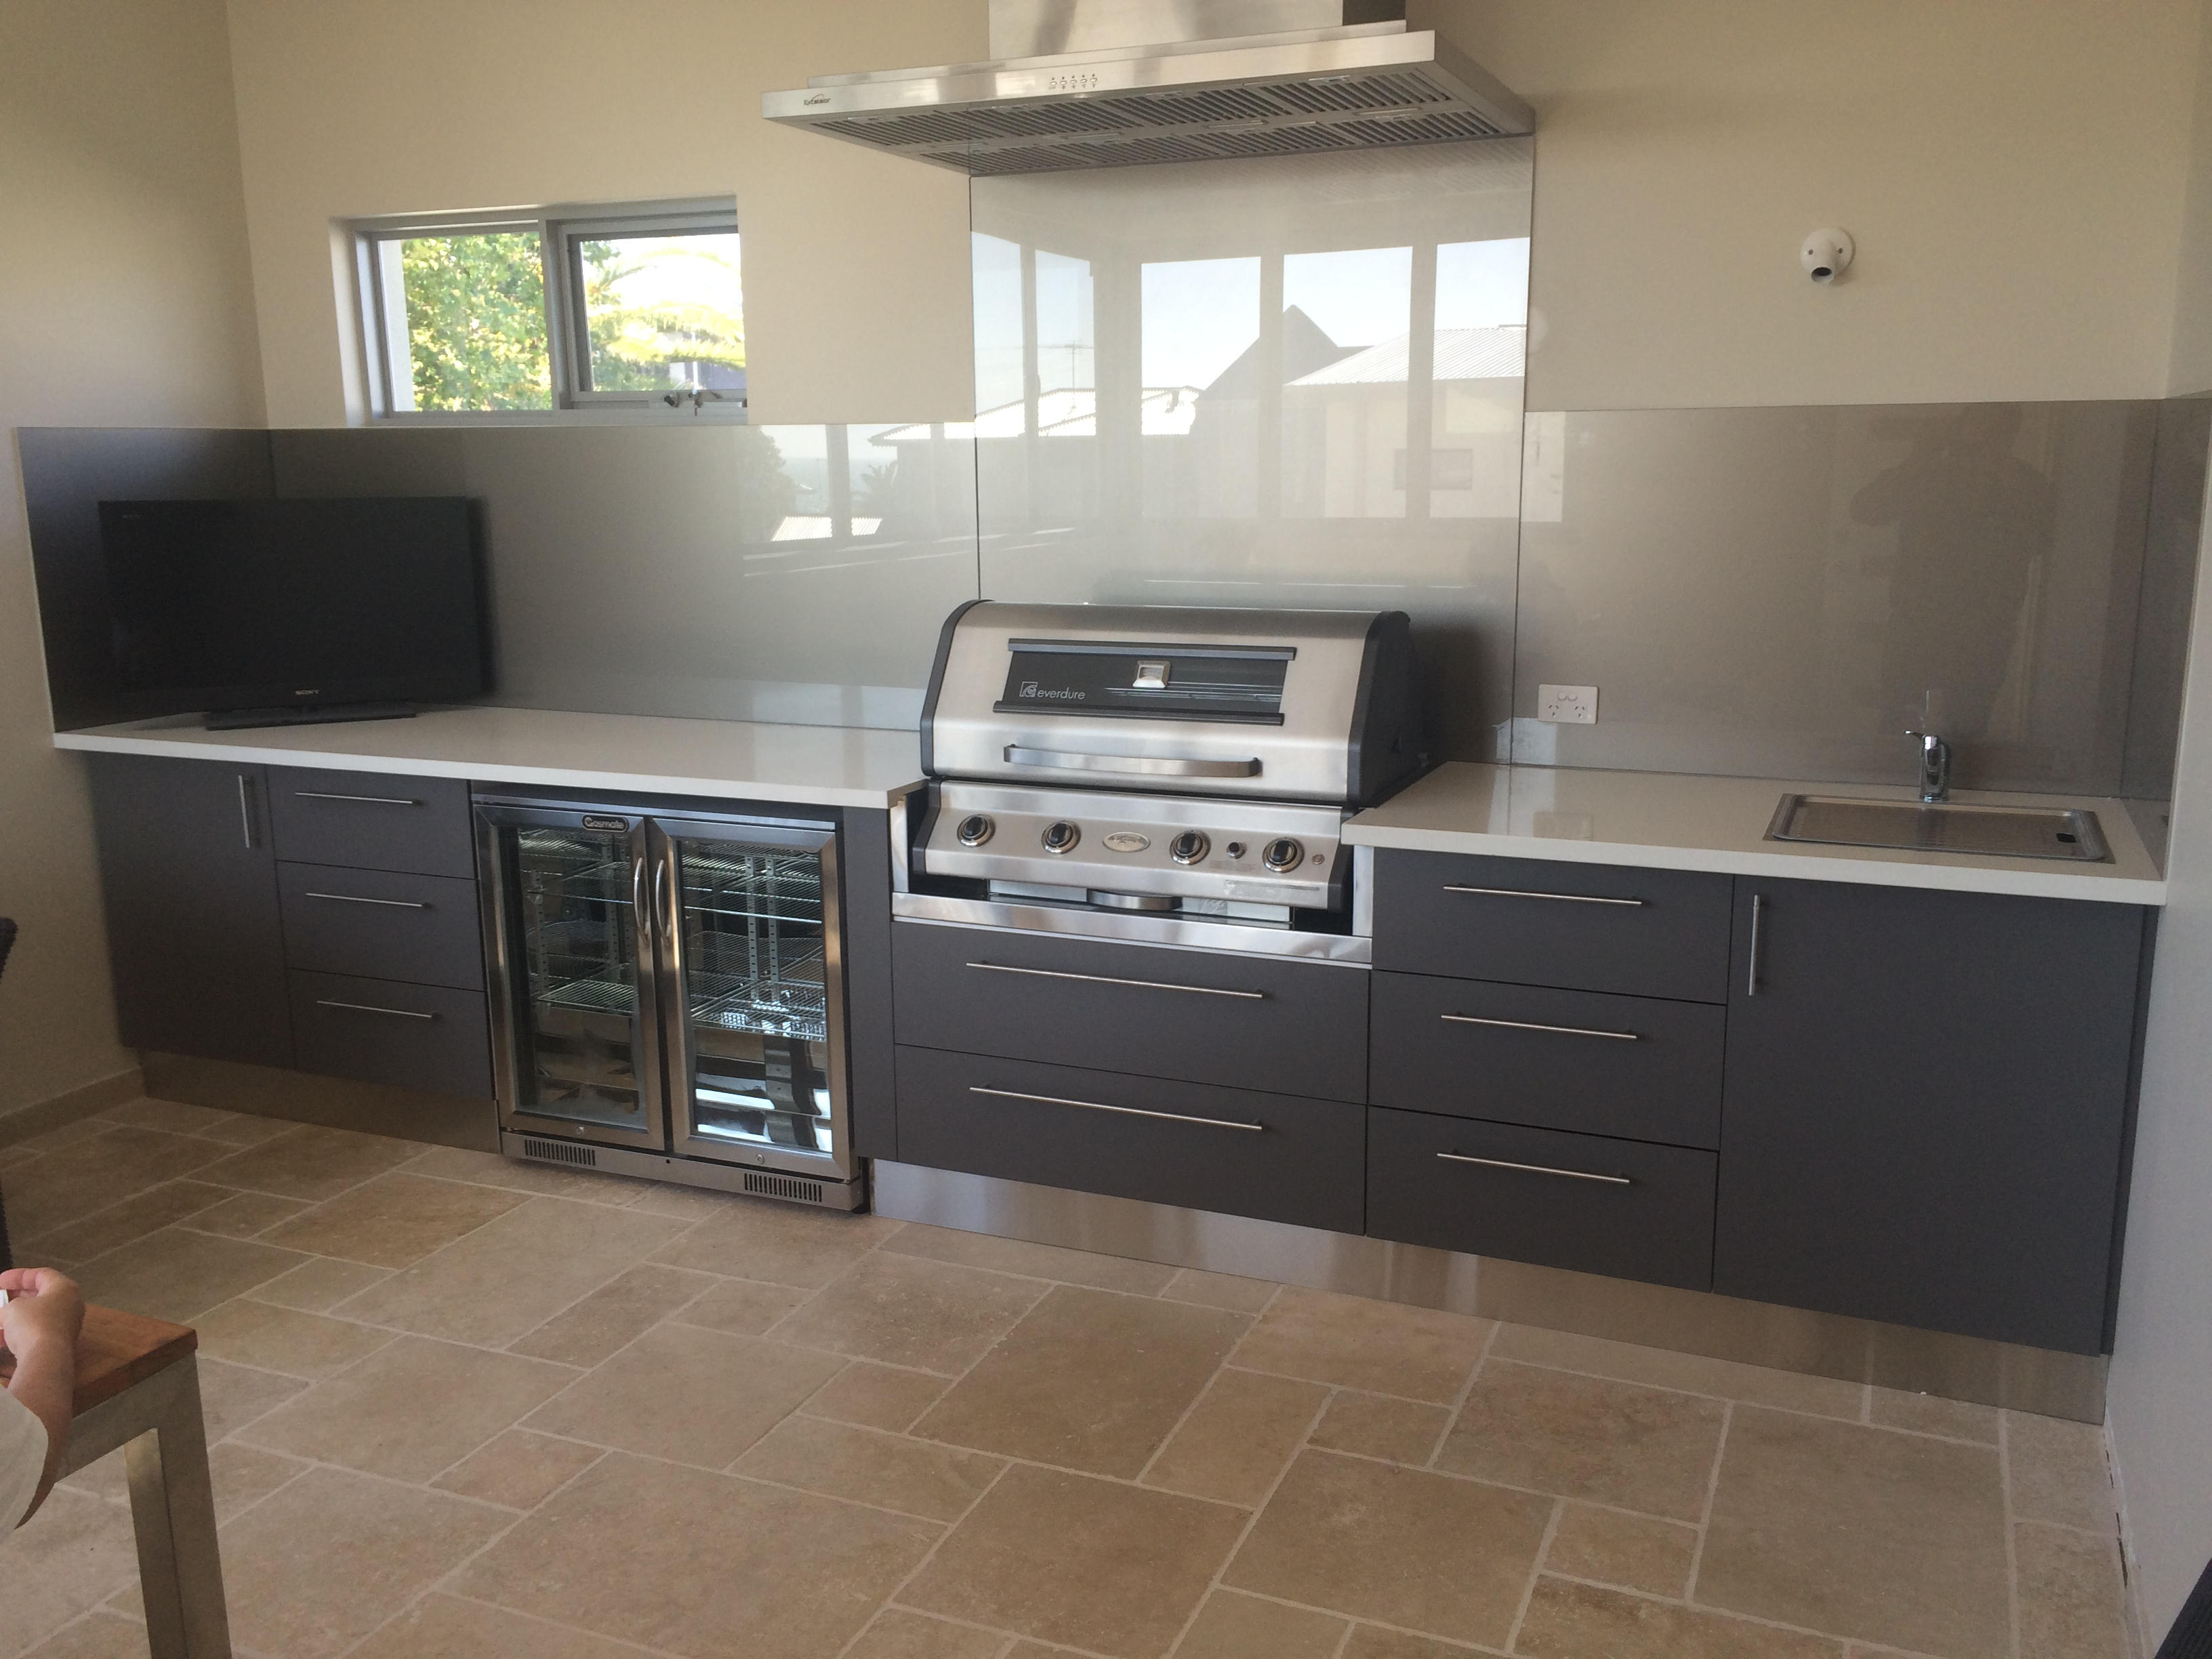 red stone outdoor kitchen granite sinks alfresco kitchens designed for life perth